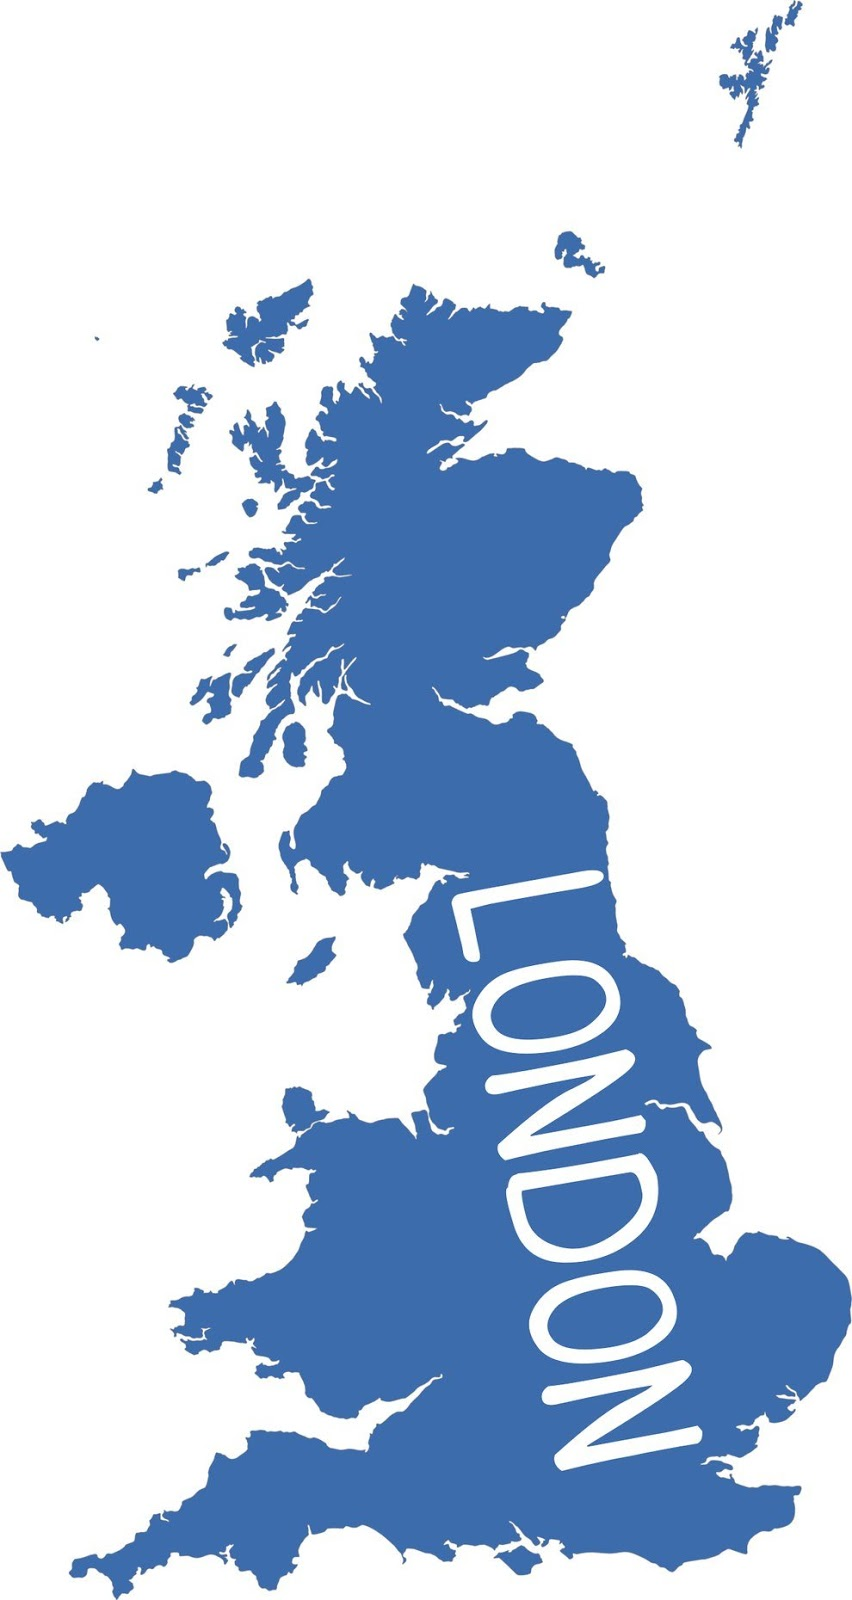 Map of the UK, according to Americans